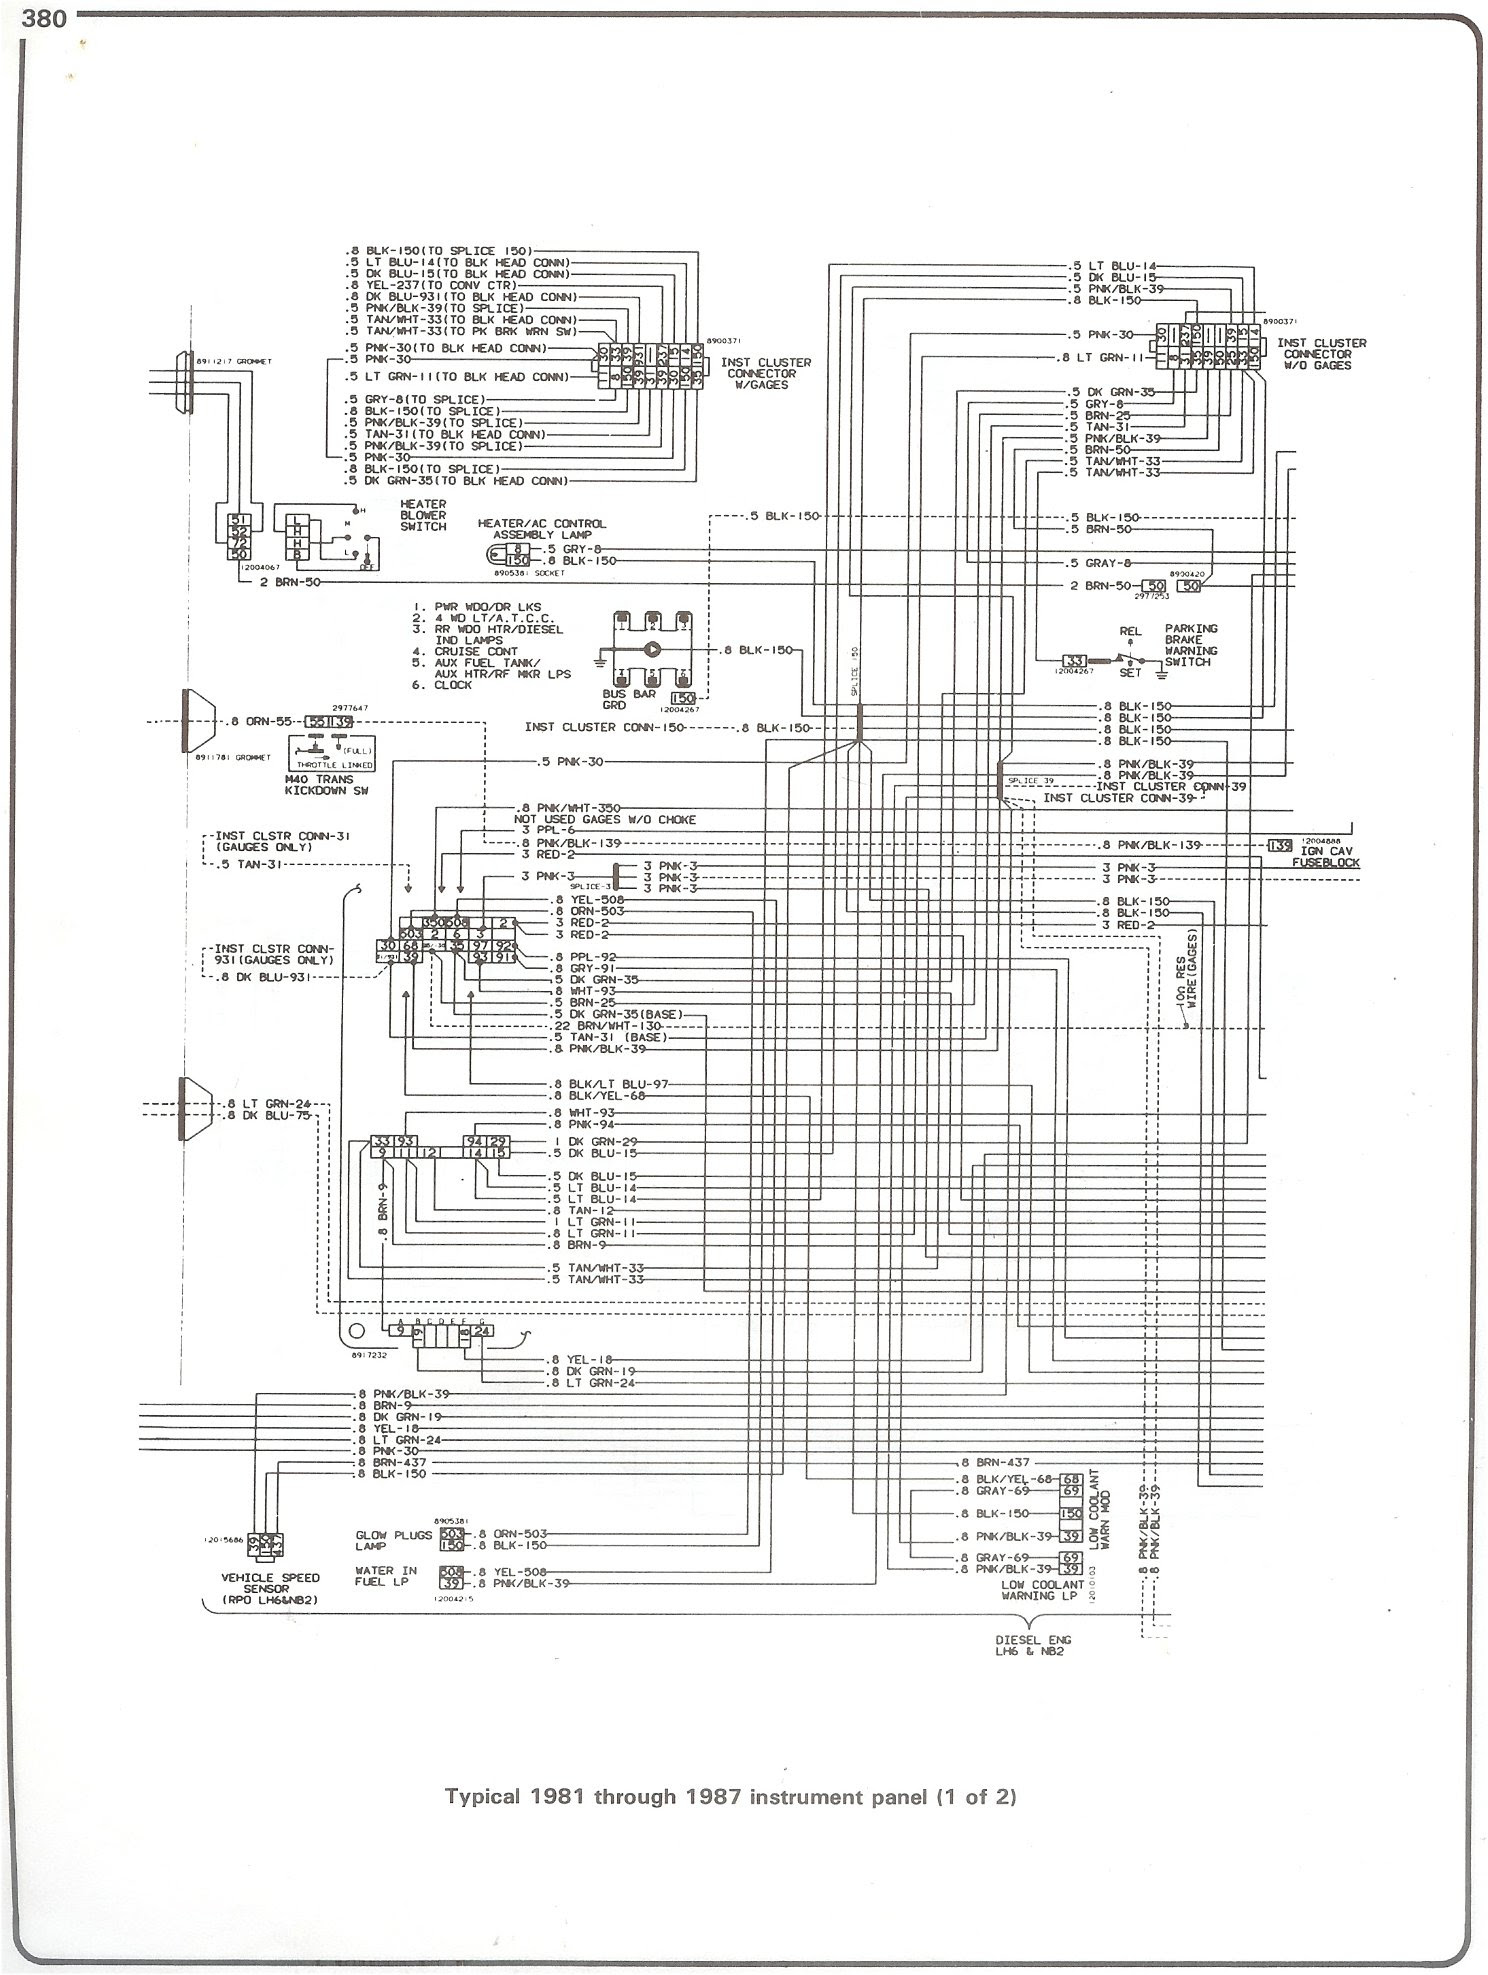 89 Chevy Kodiak Wiring Diagram Wiring Diagram Balance A Balance A Musikami It